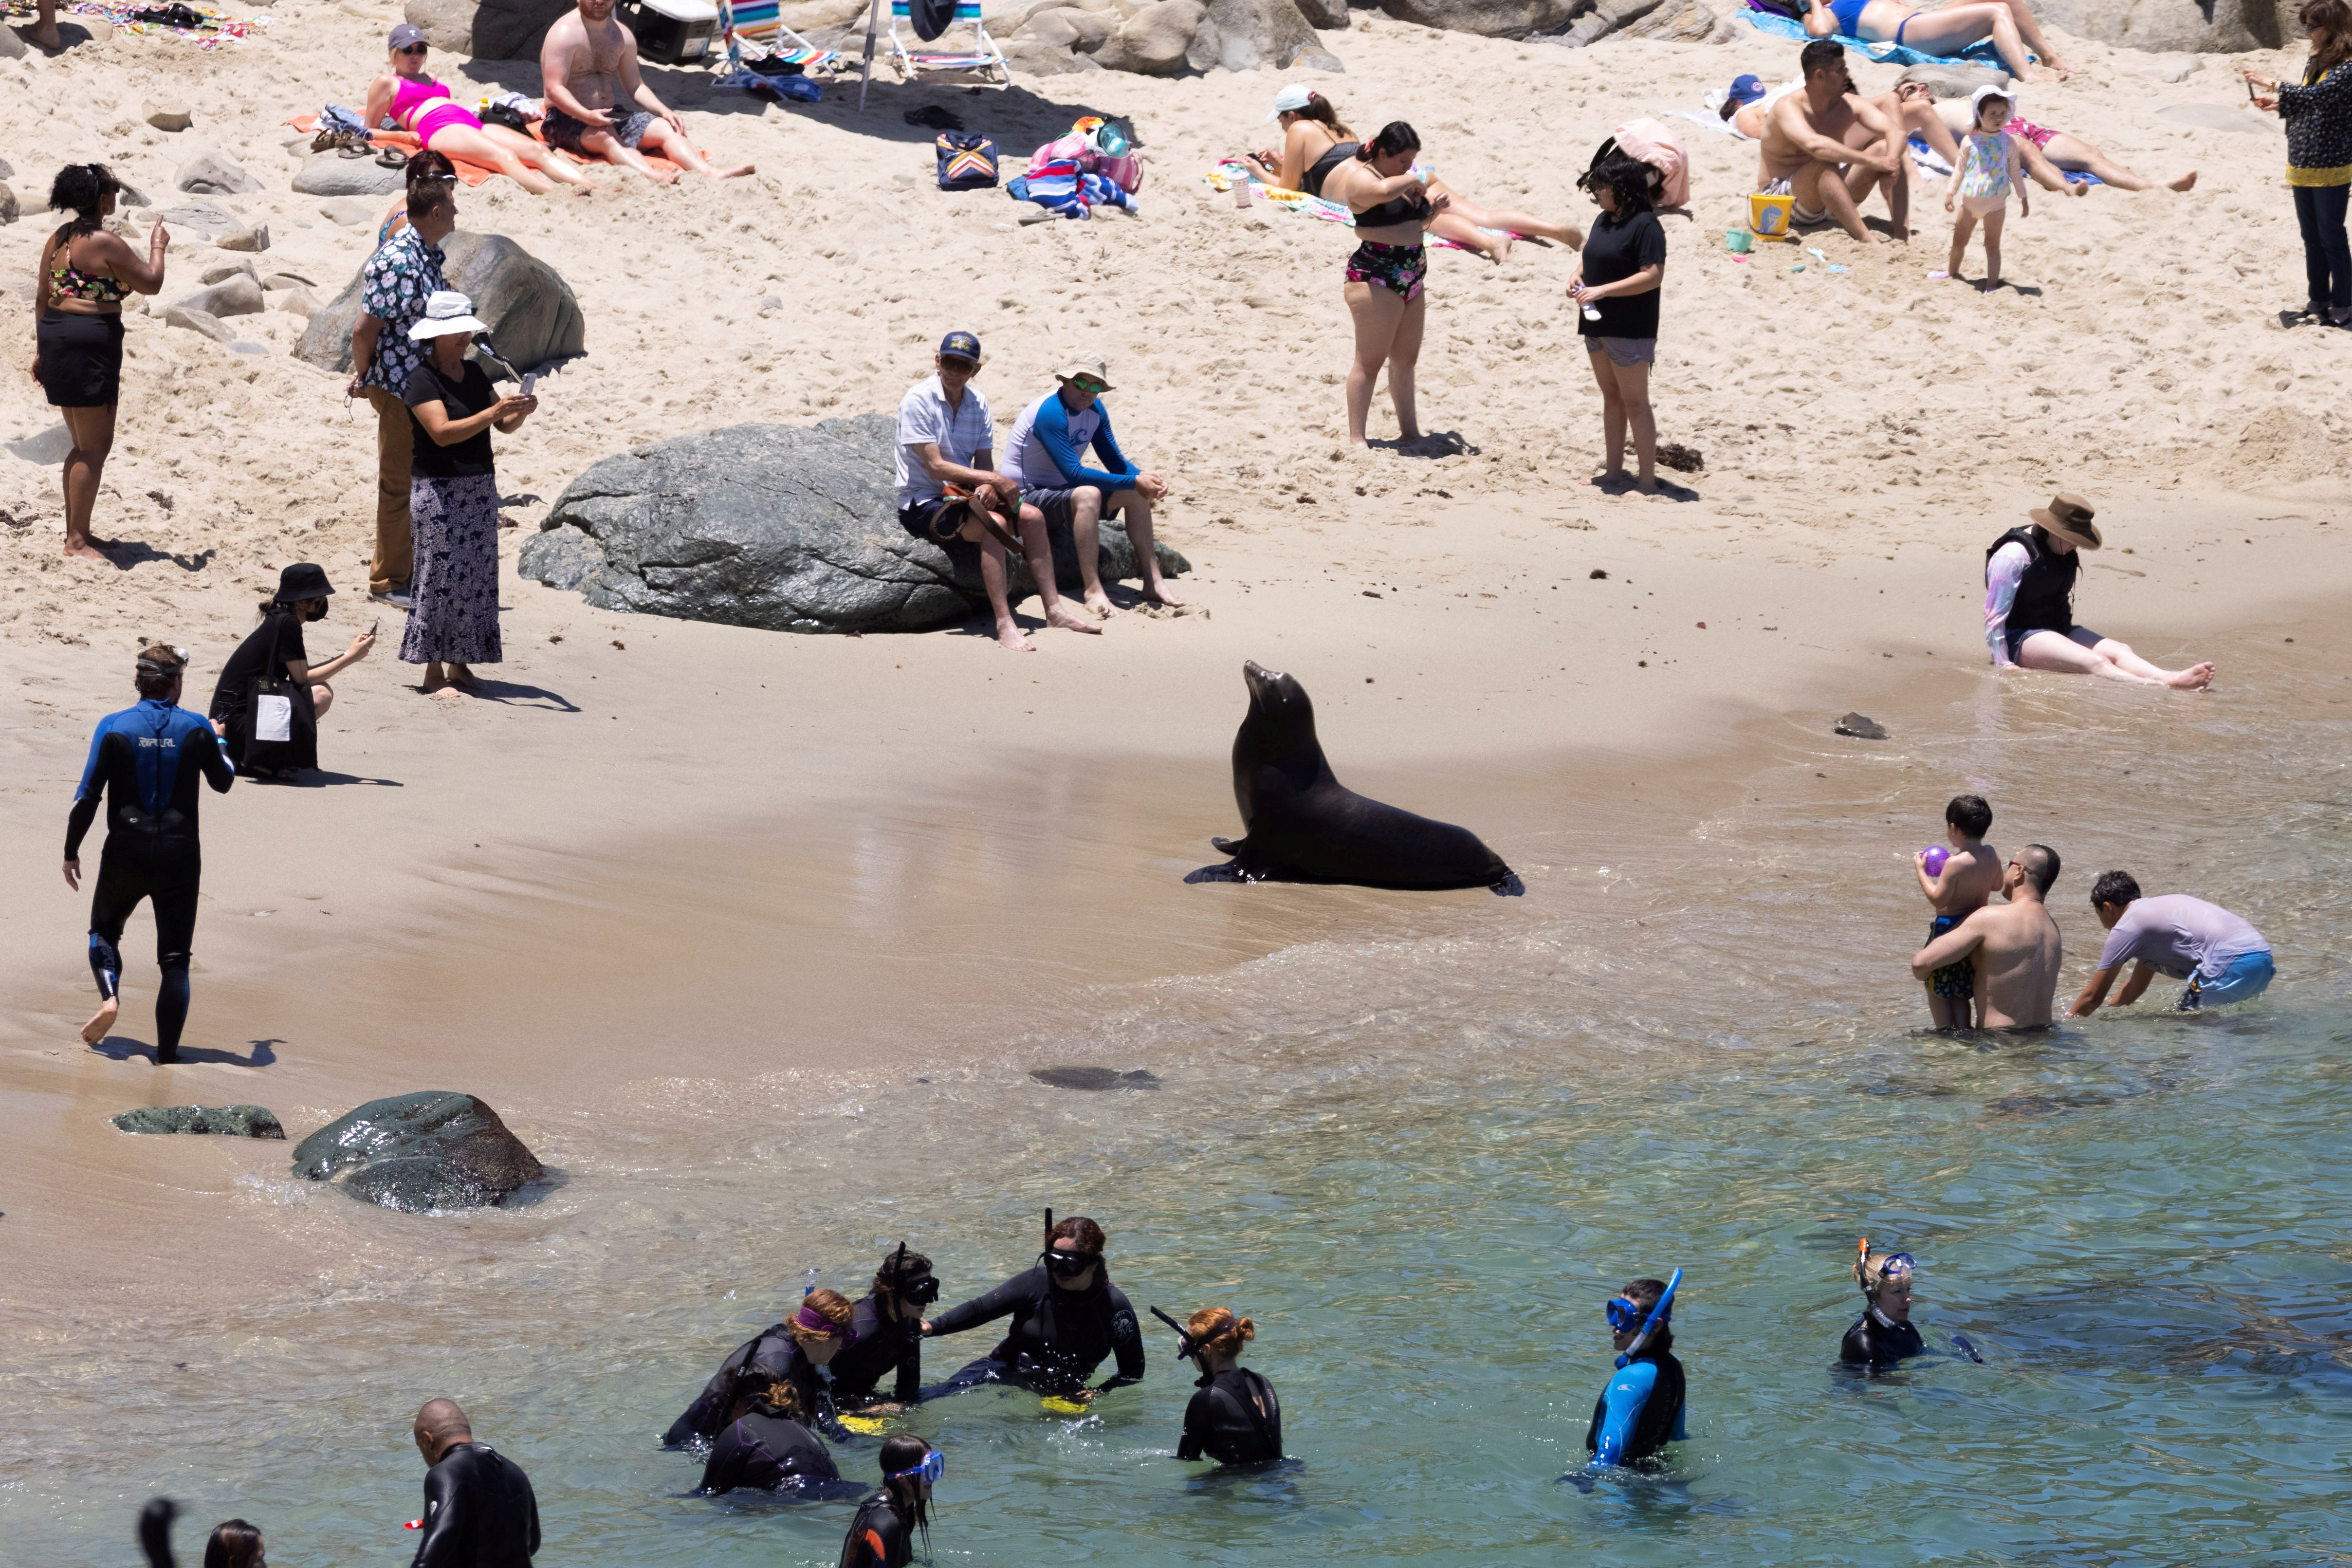 People visiting the beach look at a sea lion as tourism makes a comeback during the outbreak of the  disease in La Jolla, California. REUTERS/Mike Blake